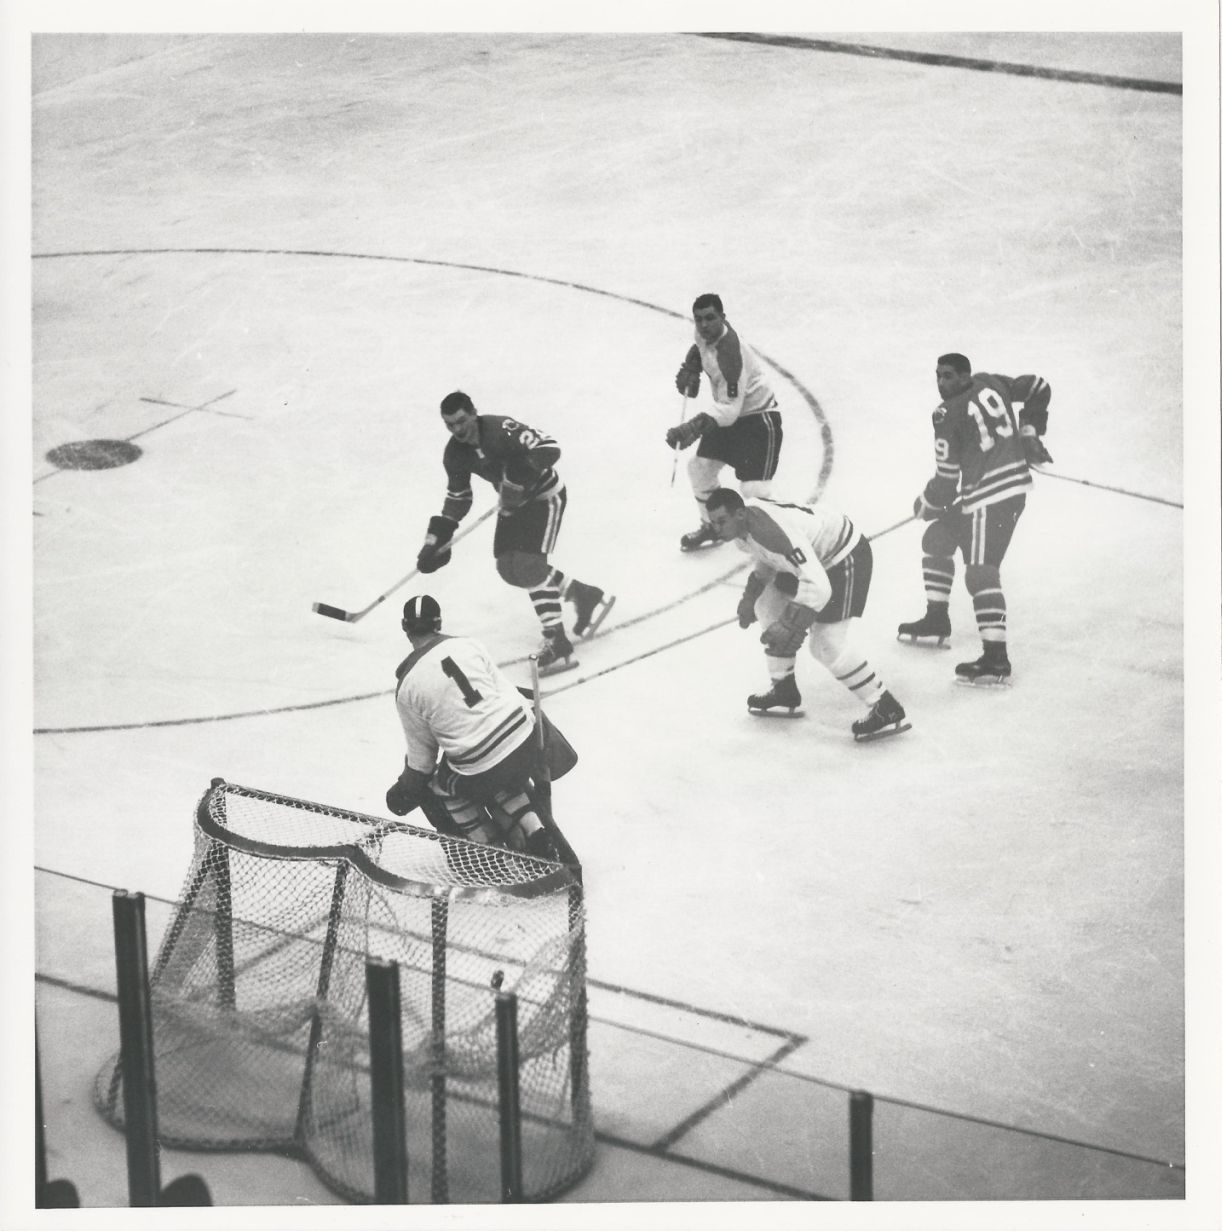 Plante Original Item Detail Stan Mikika Scores On Jacques Plante Original 1962 Photo